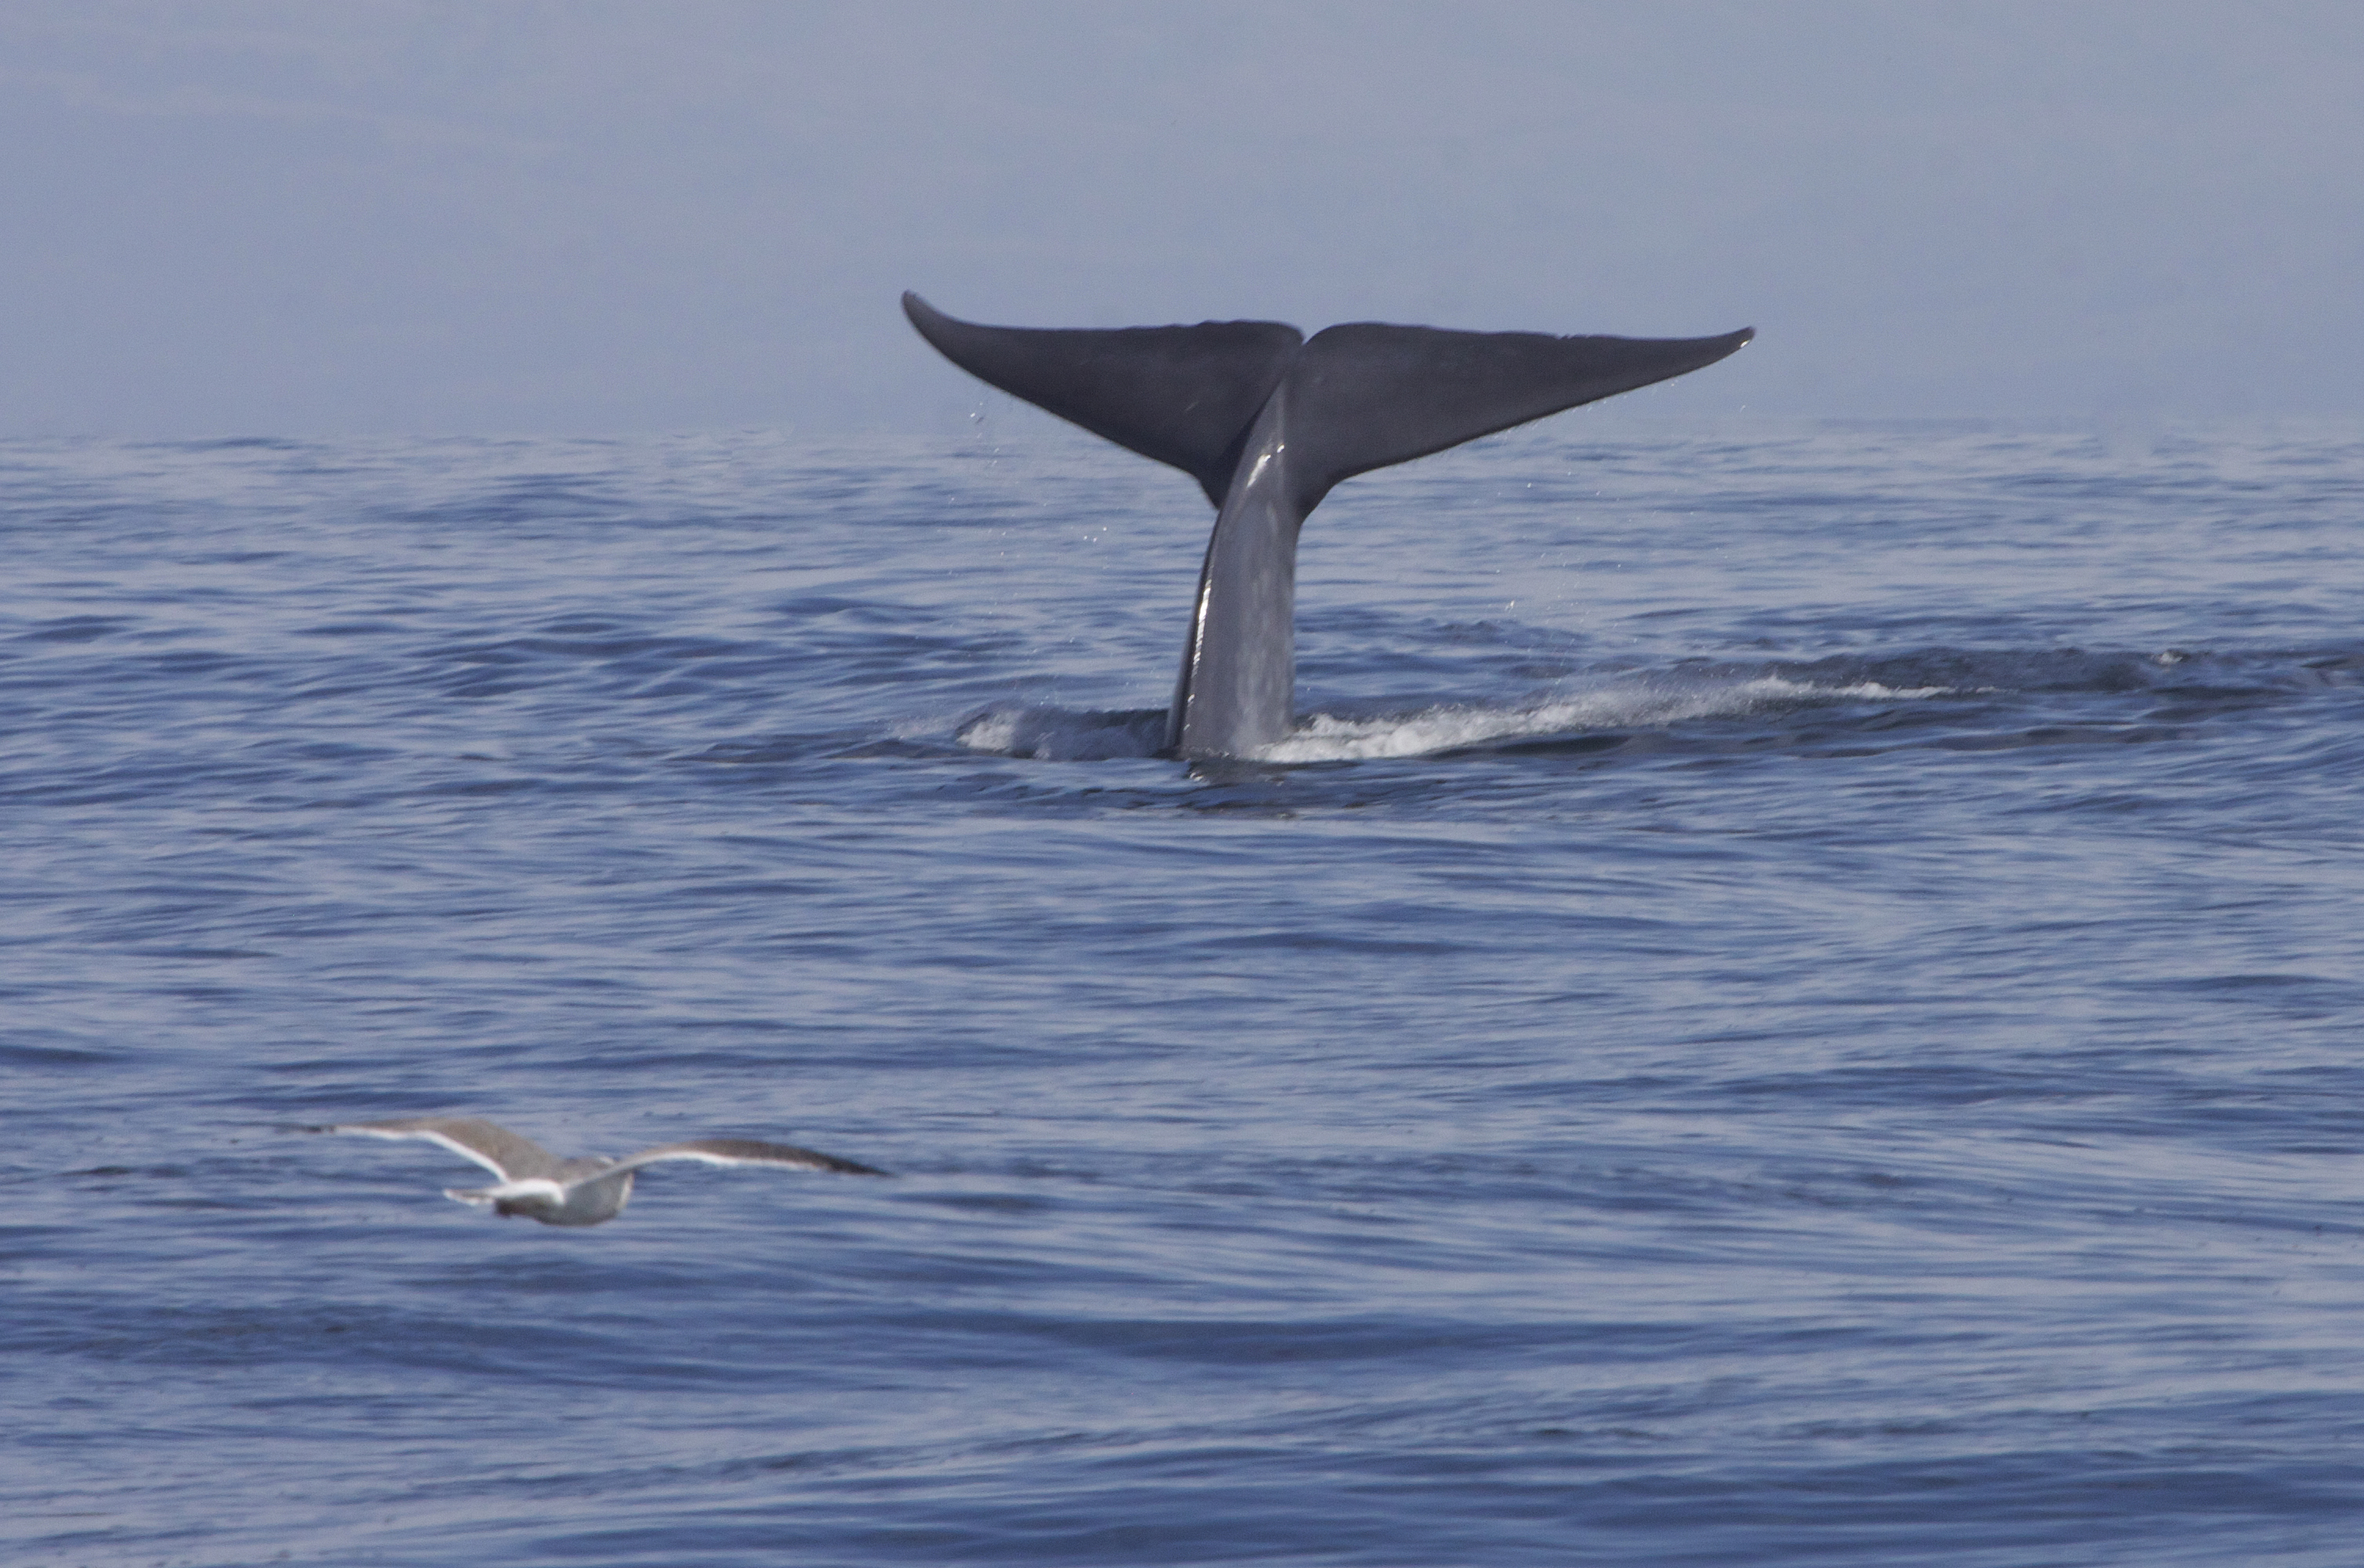 The Verge Review of Animals: the blue whale - The Verge